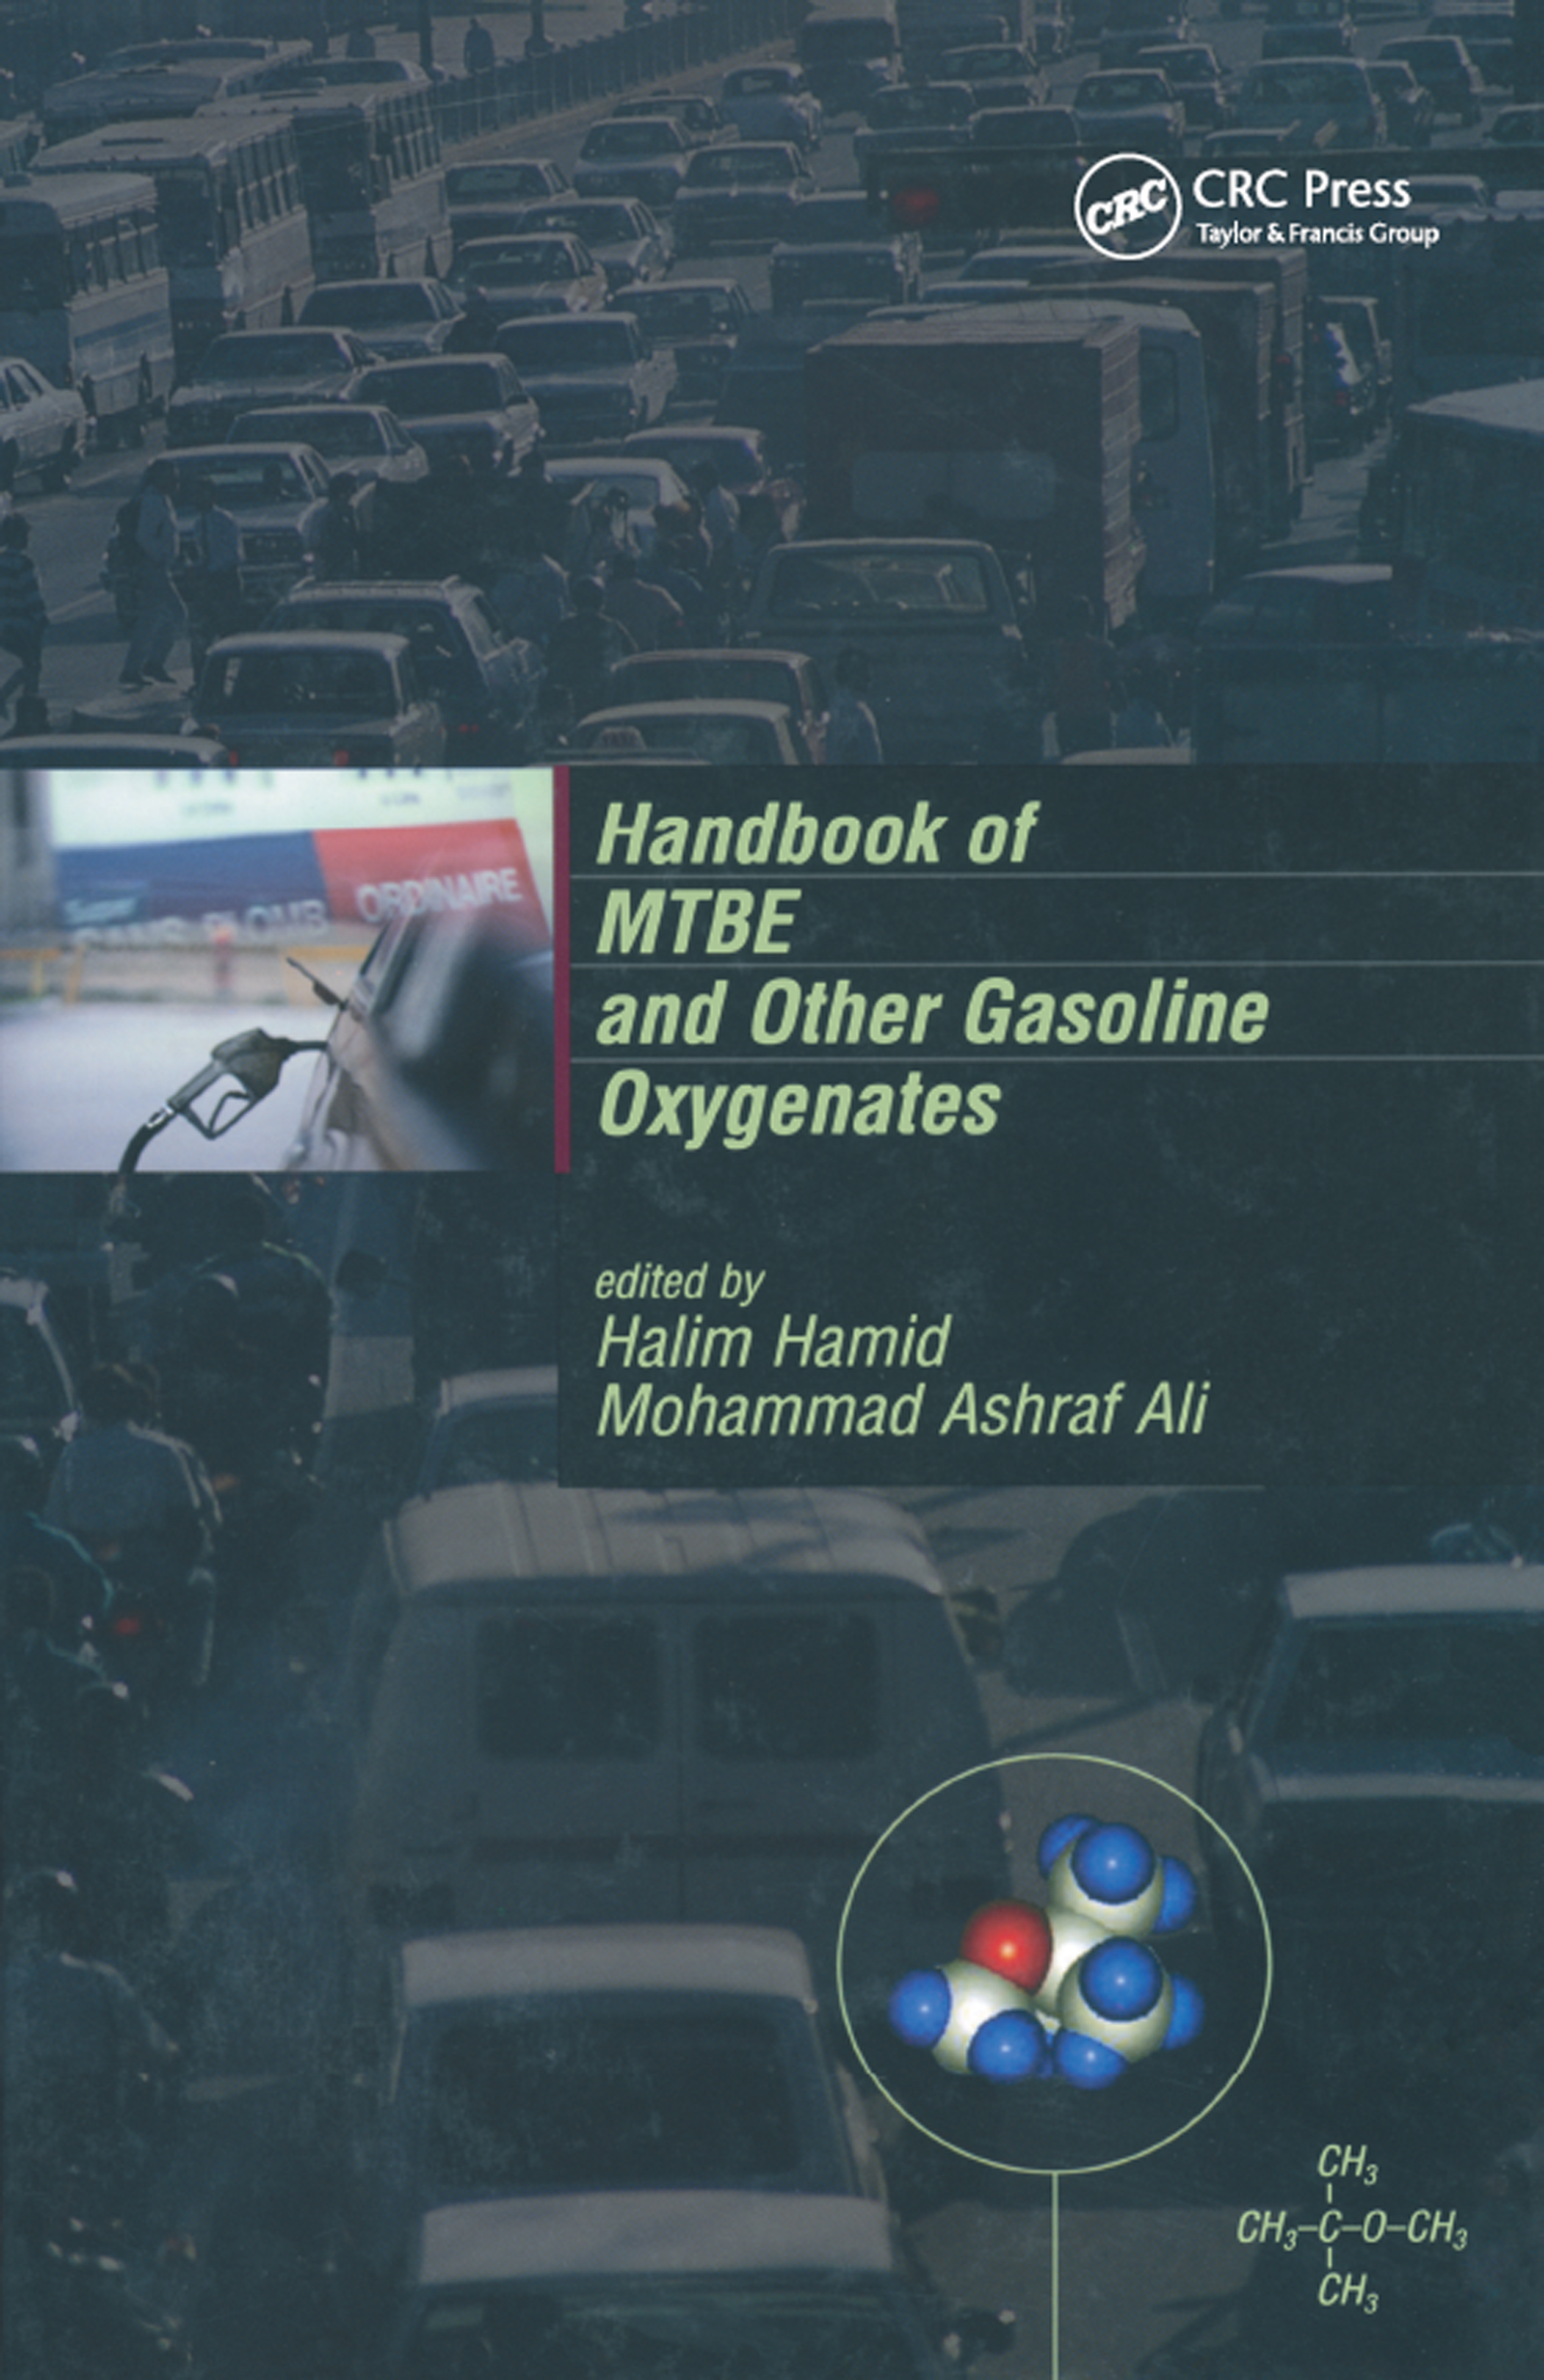 Handbook of MTBE and Other Gasoline Oxygenates book cover